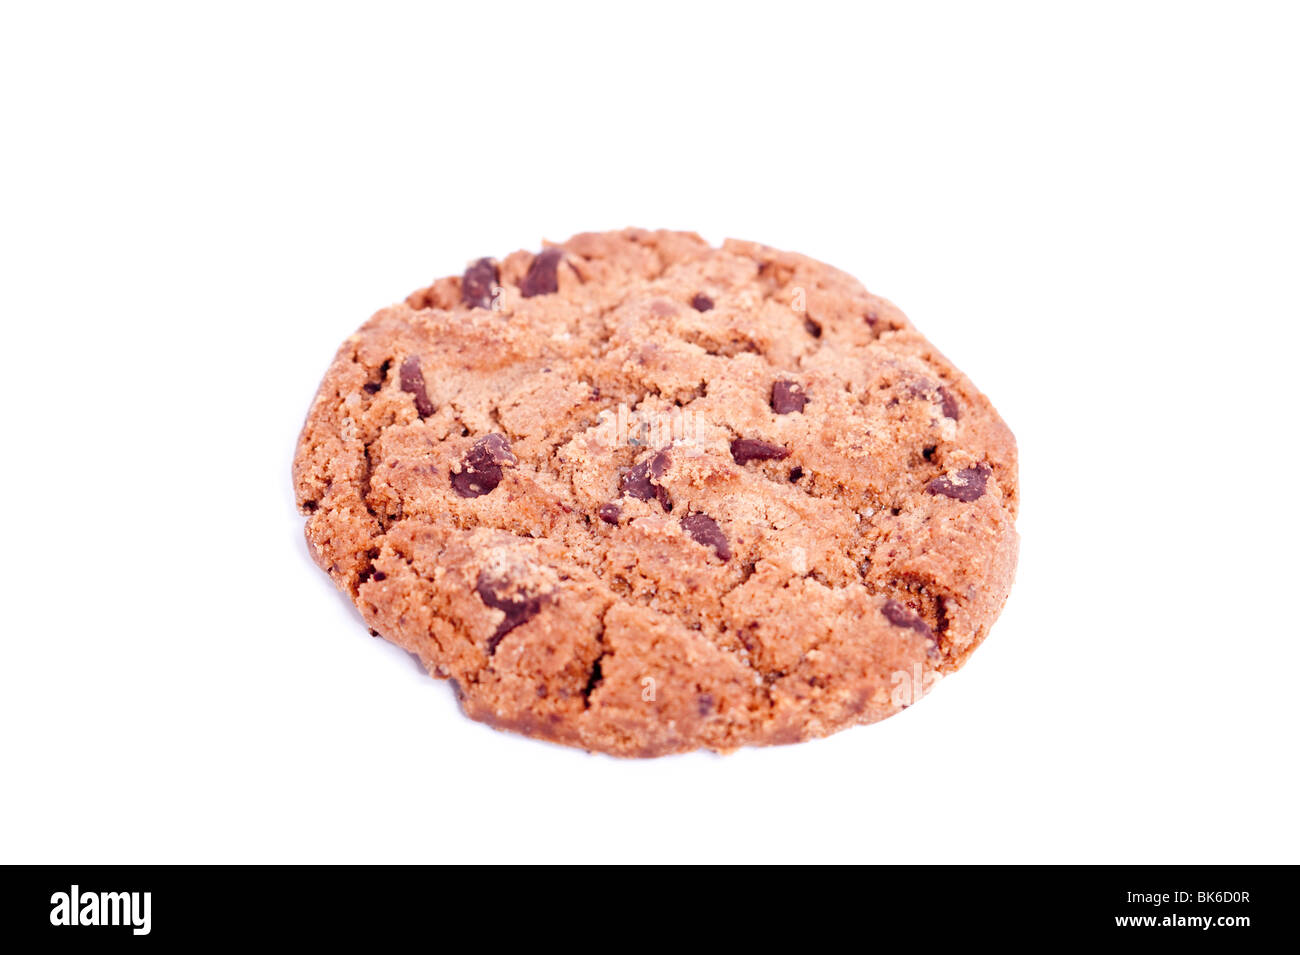 A double chocolate cookie biscuit on a white background - Stock Image